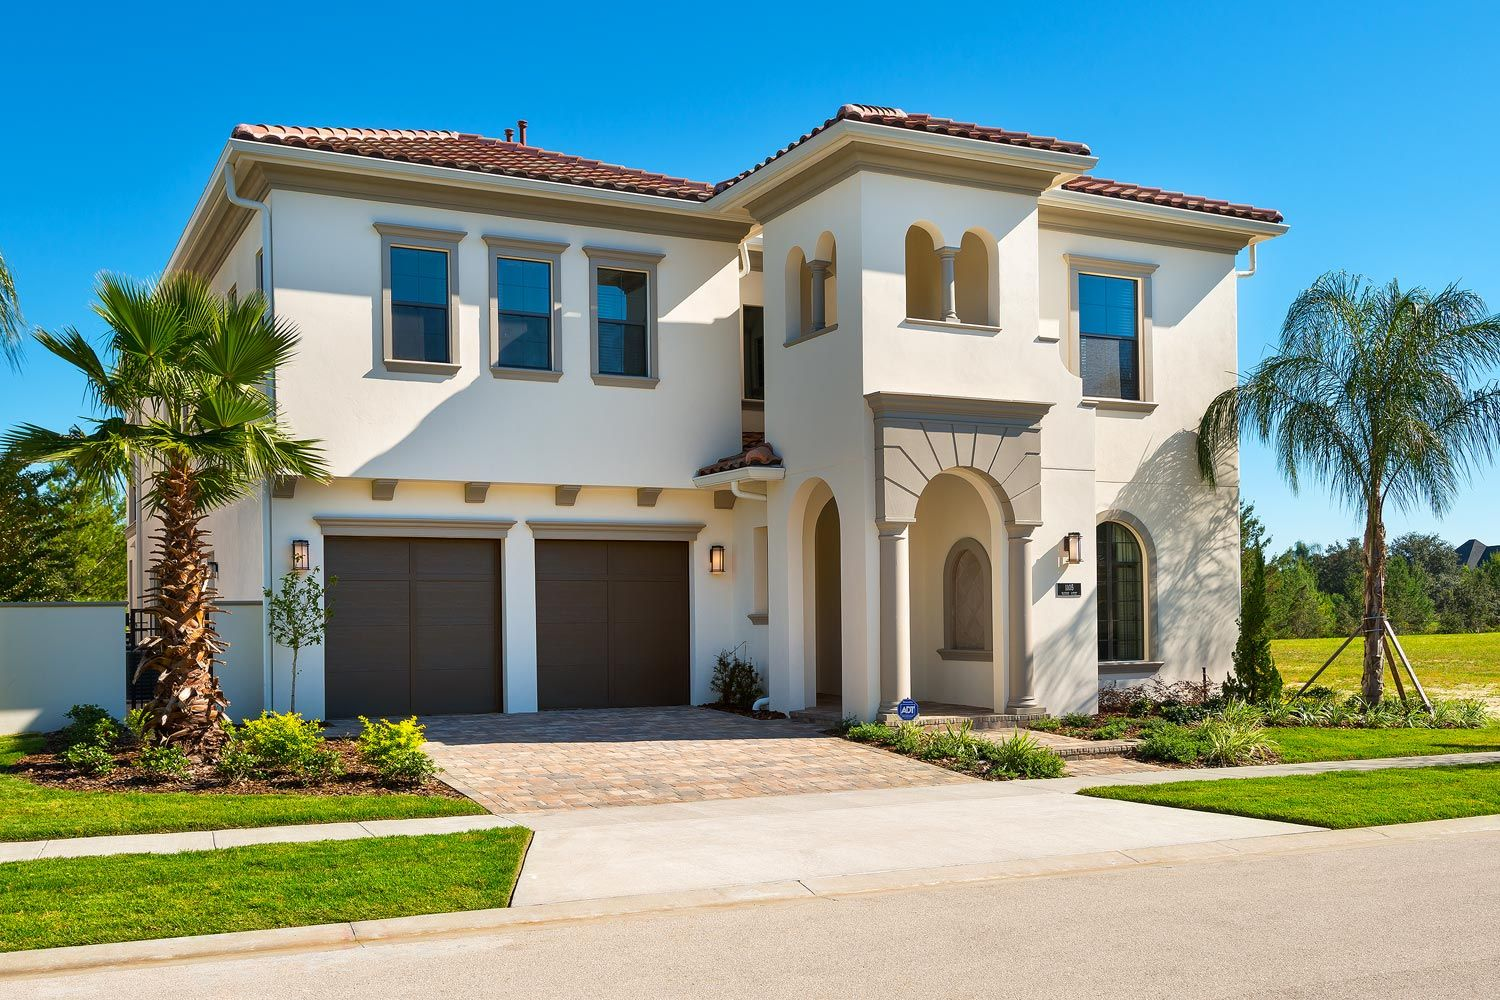 """Featured on """"House Hunters,"""" 1105 Watson Ct is a 9-bedroom, 9 ..."""